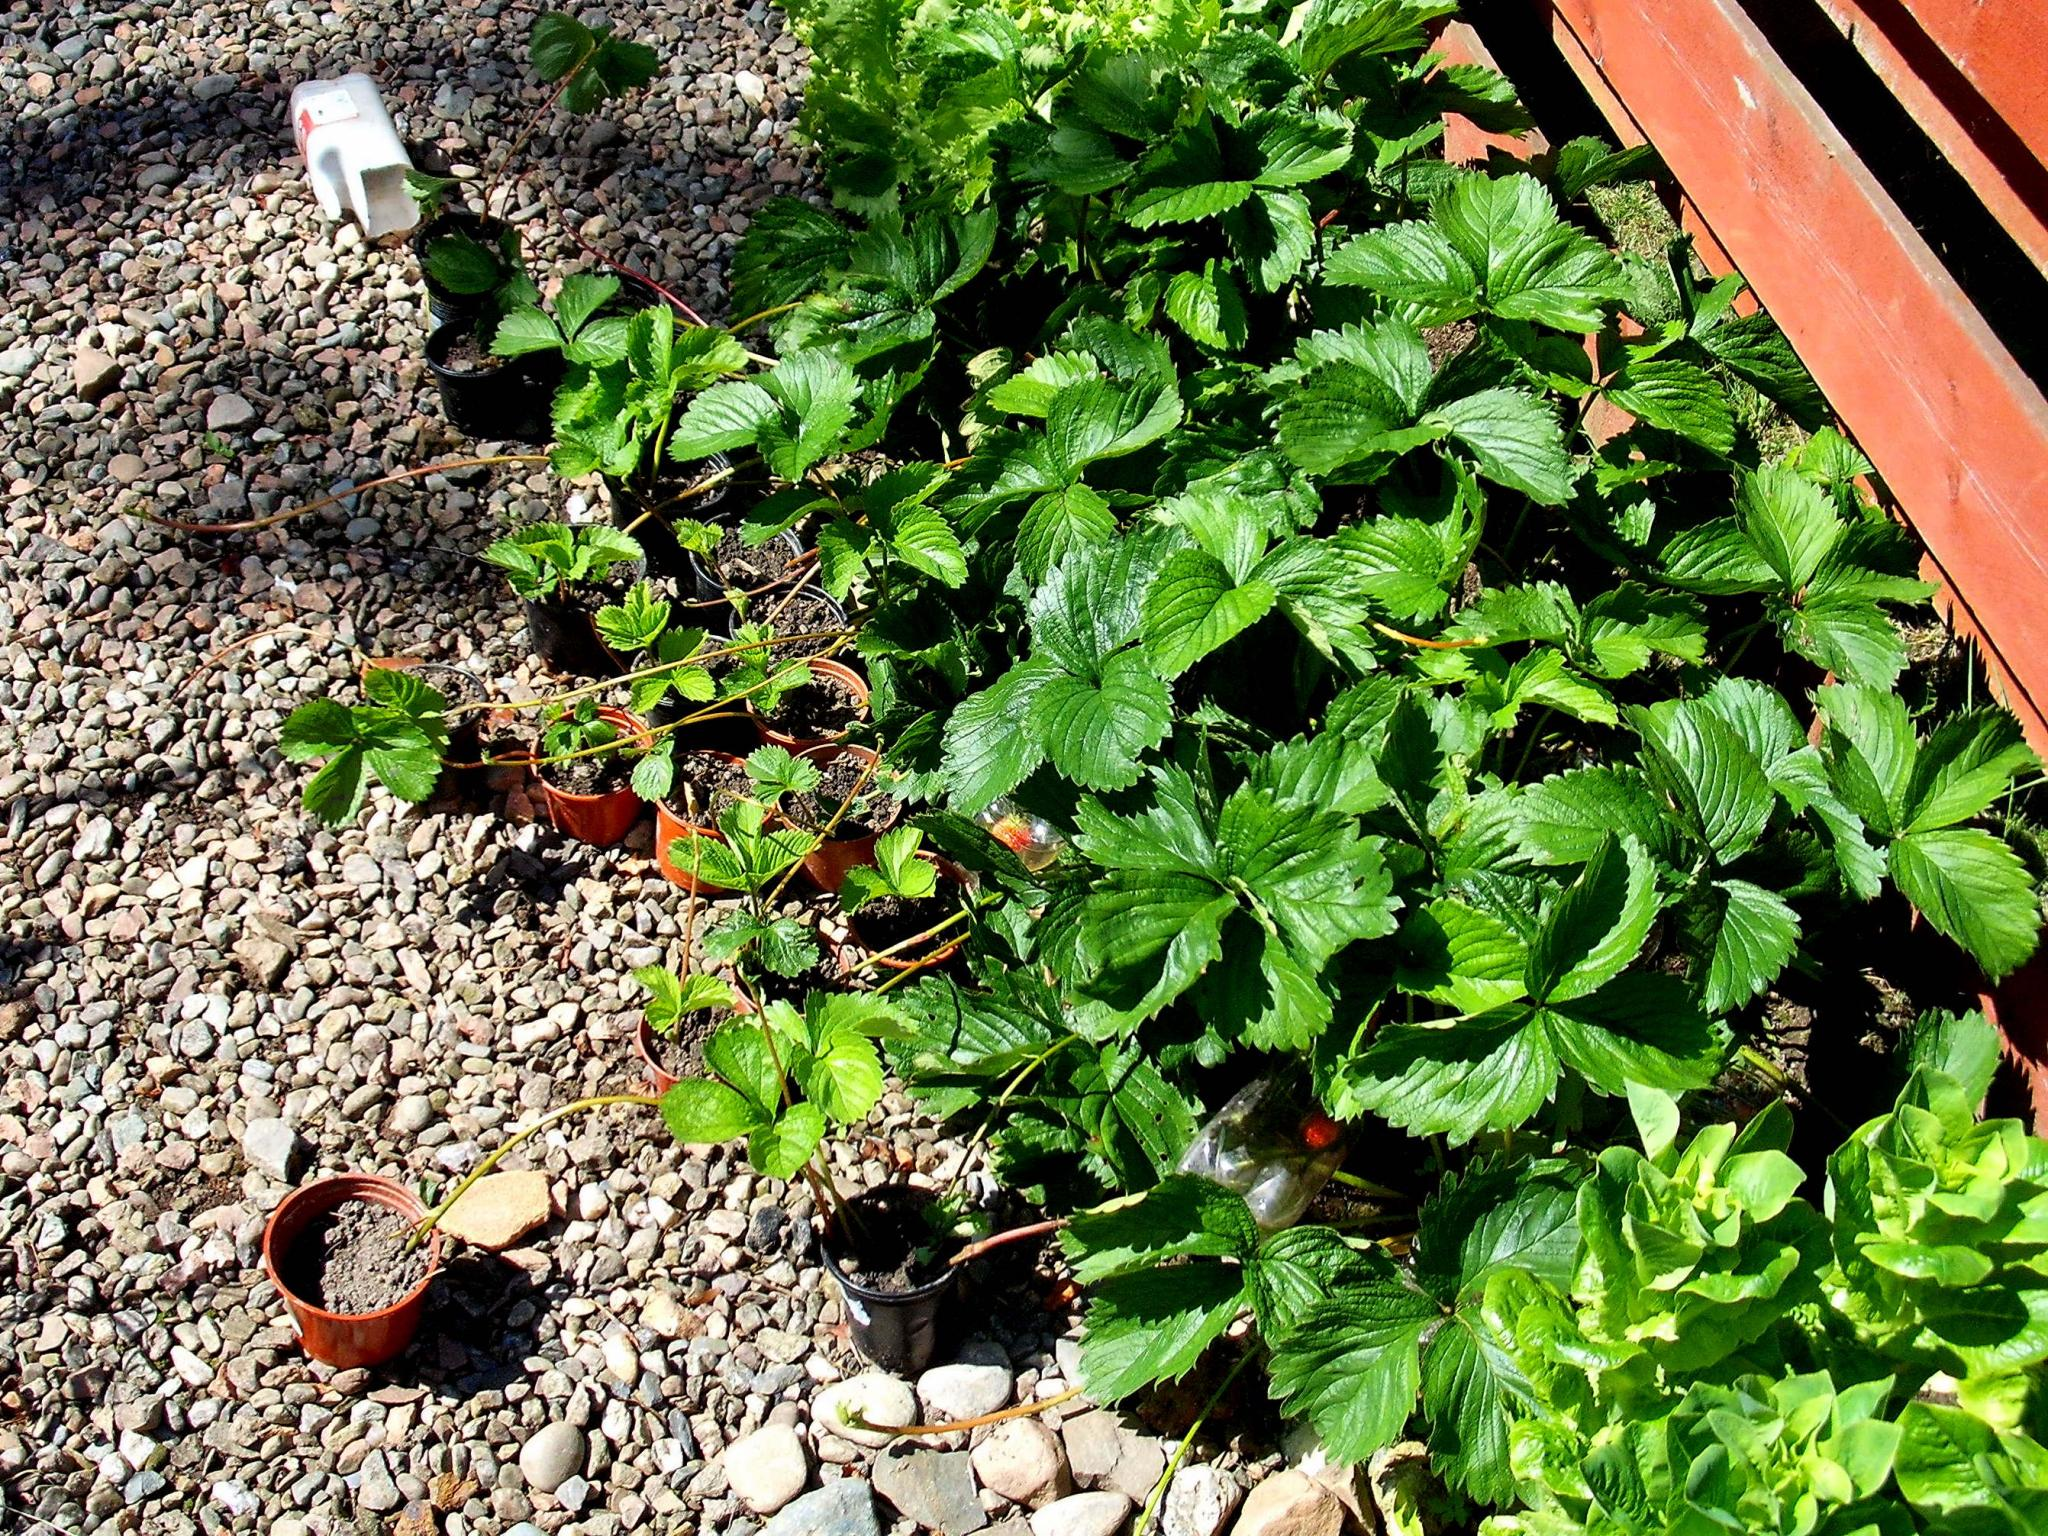 The strawberry plants in my back garden producing runners.